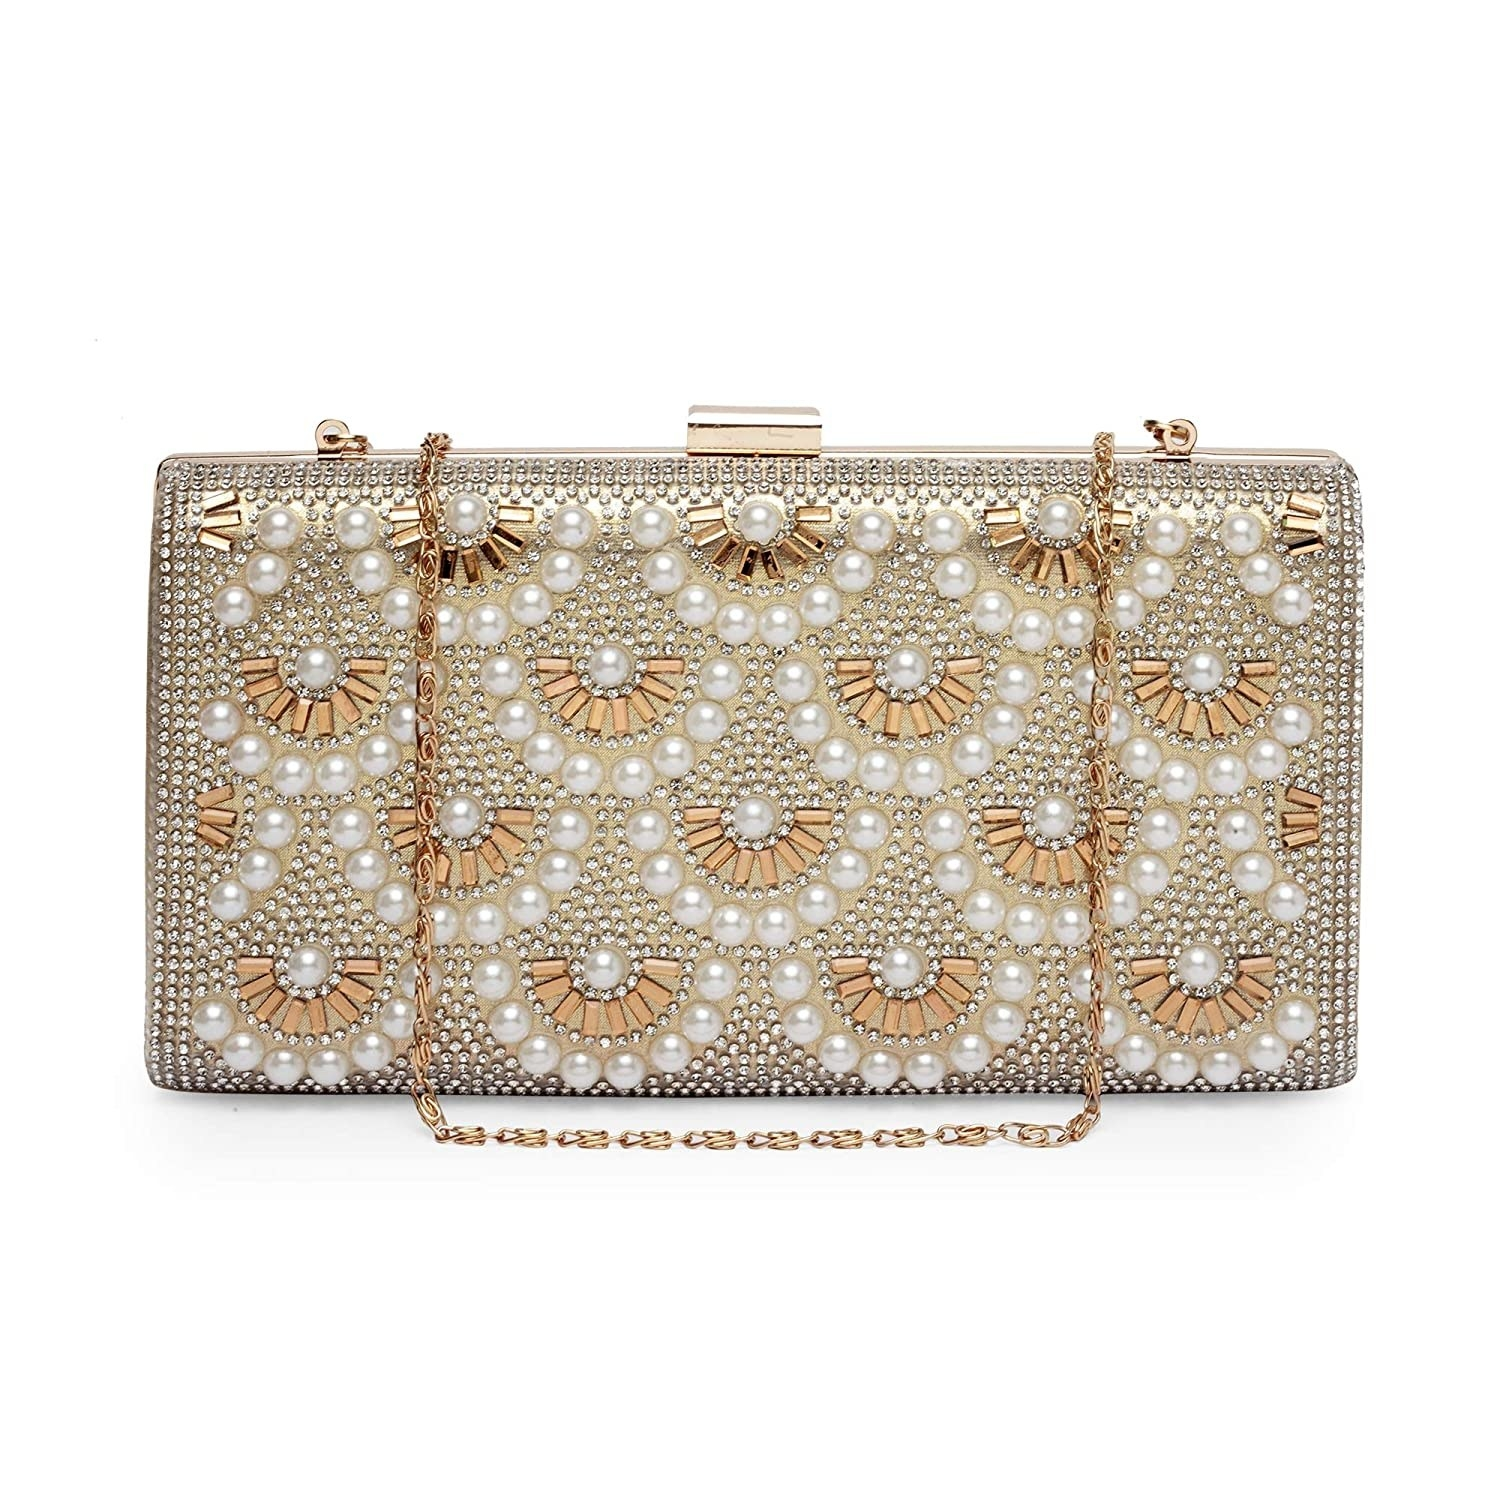 A clutch with floral pearl beads on them